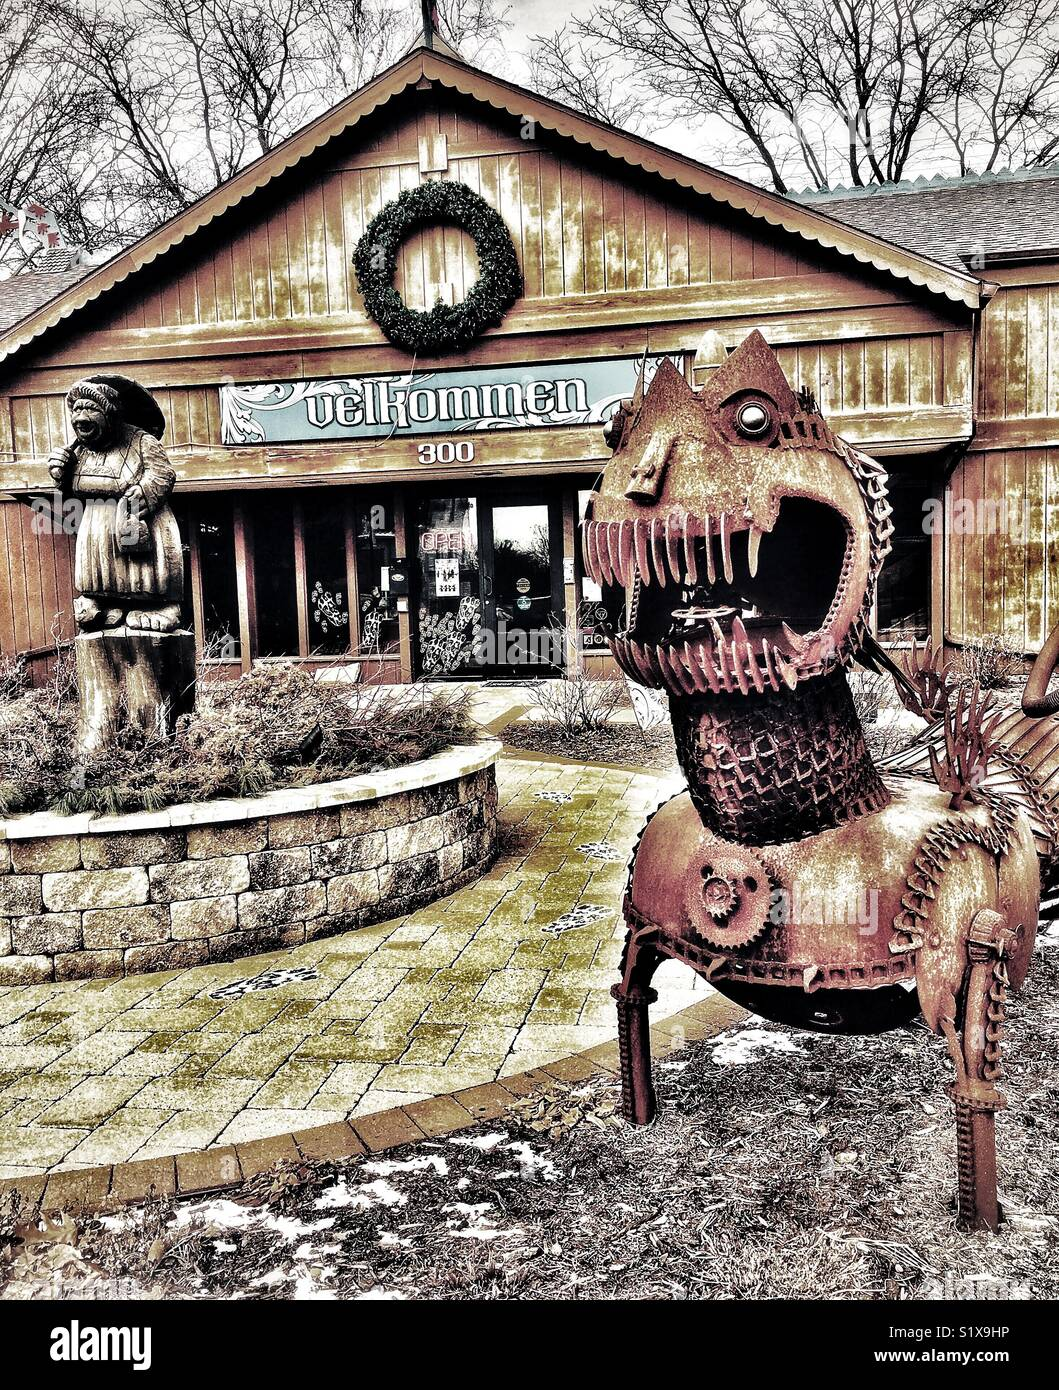 Chamber of Commerce with troll carving and metal sculpture, Mount